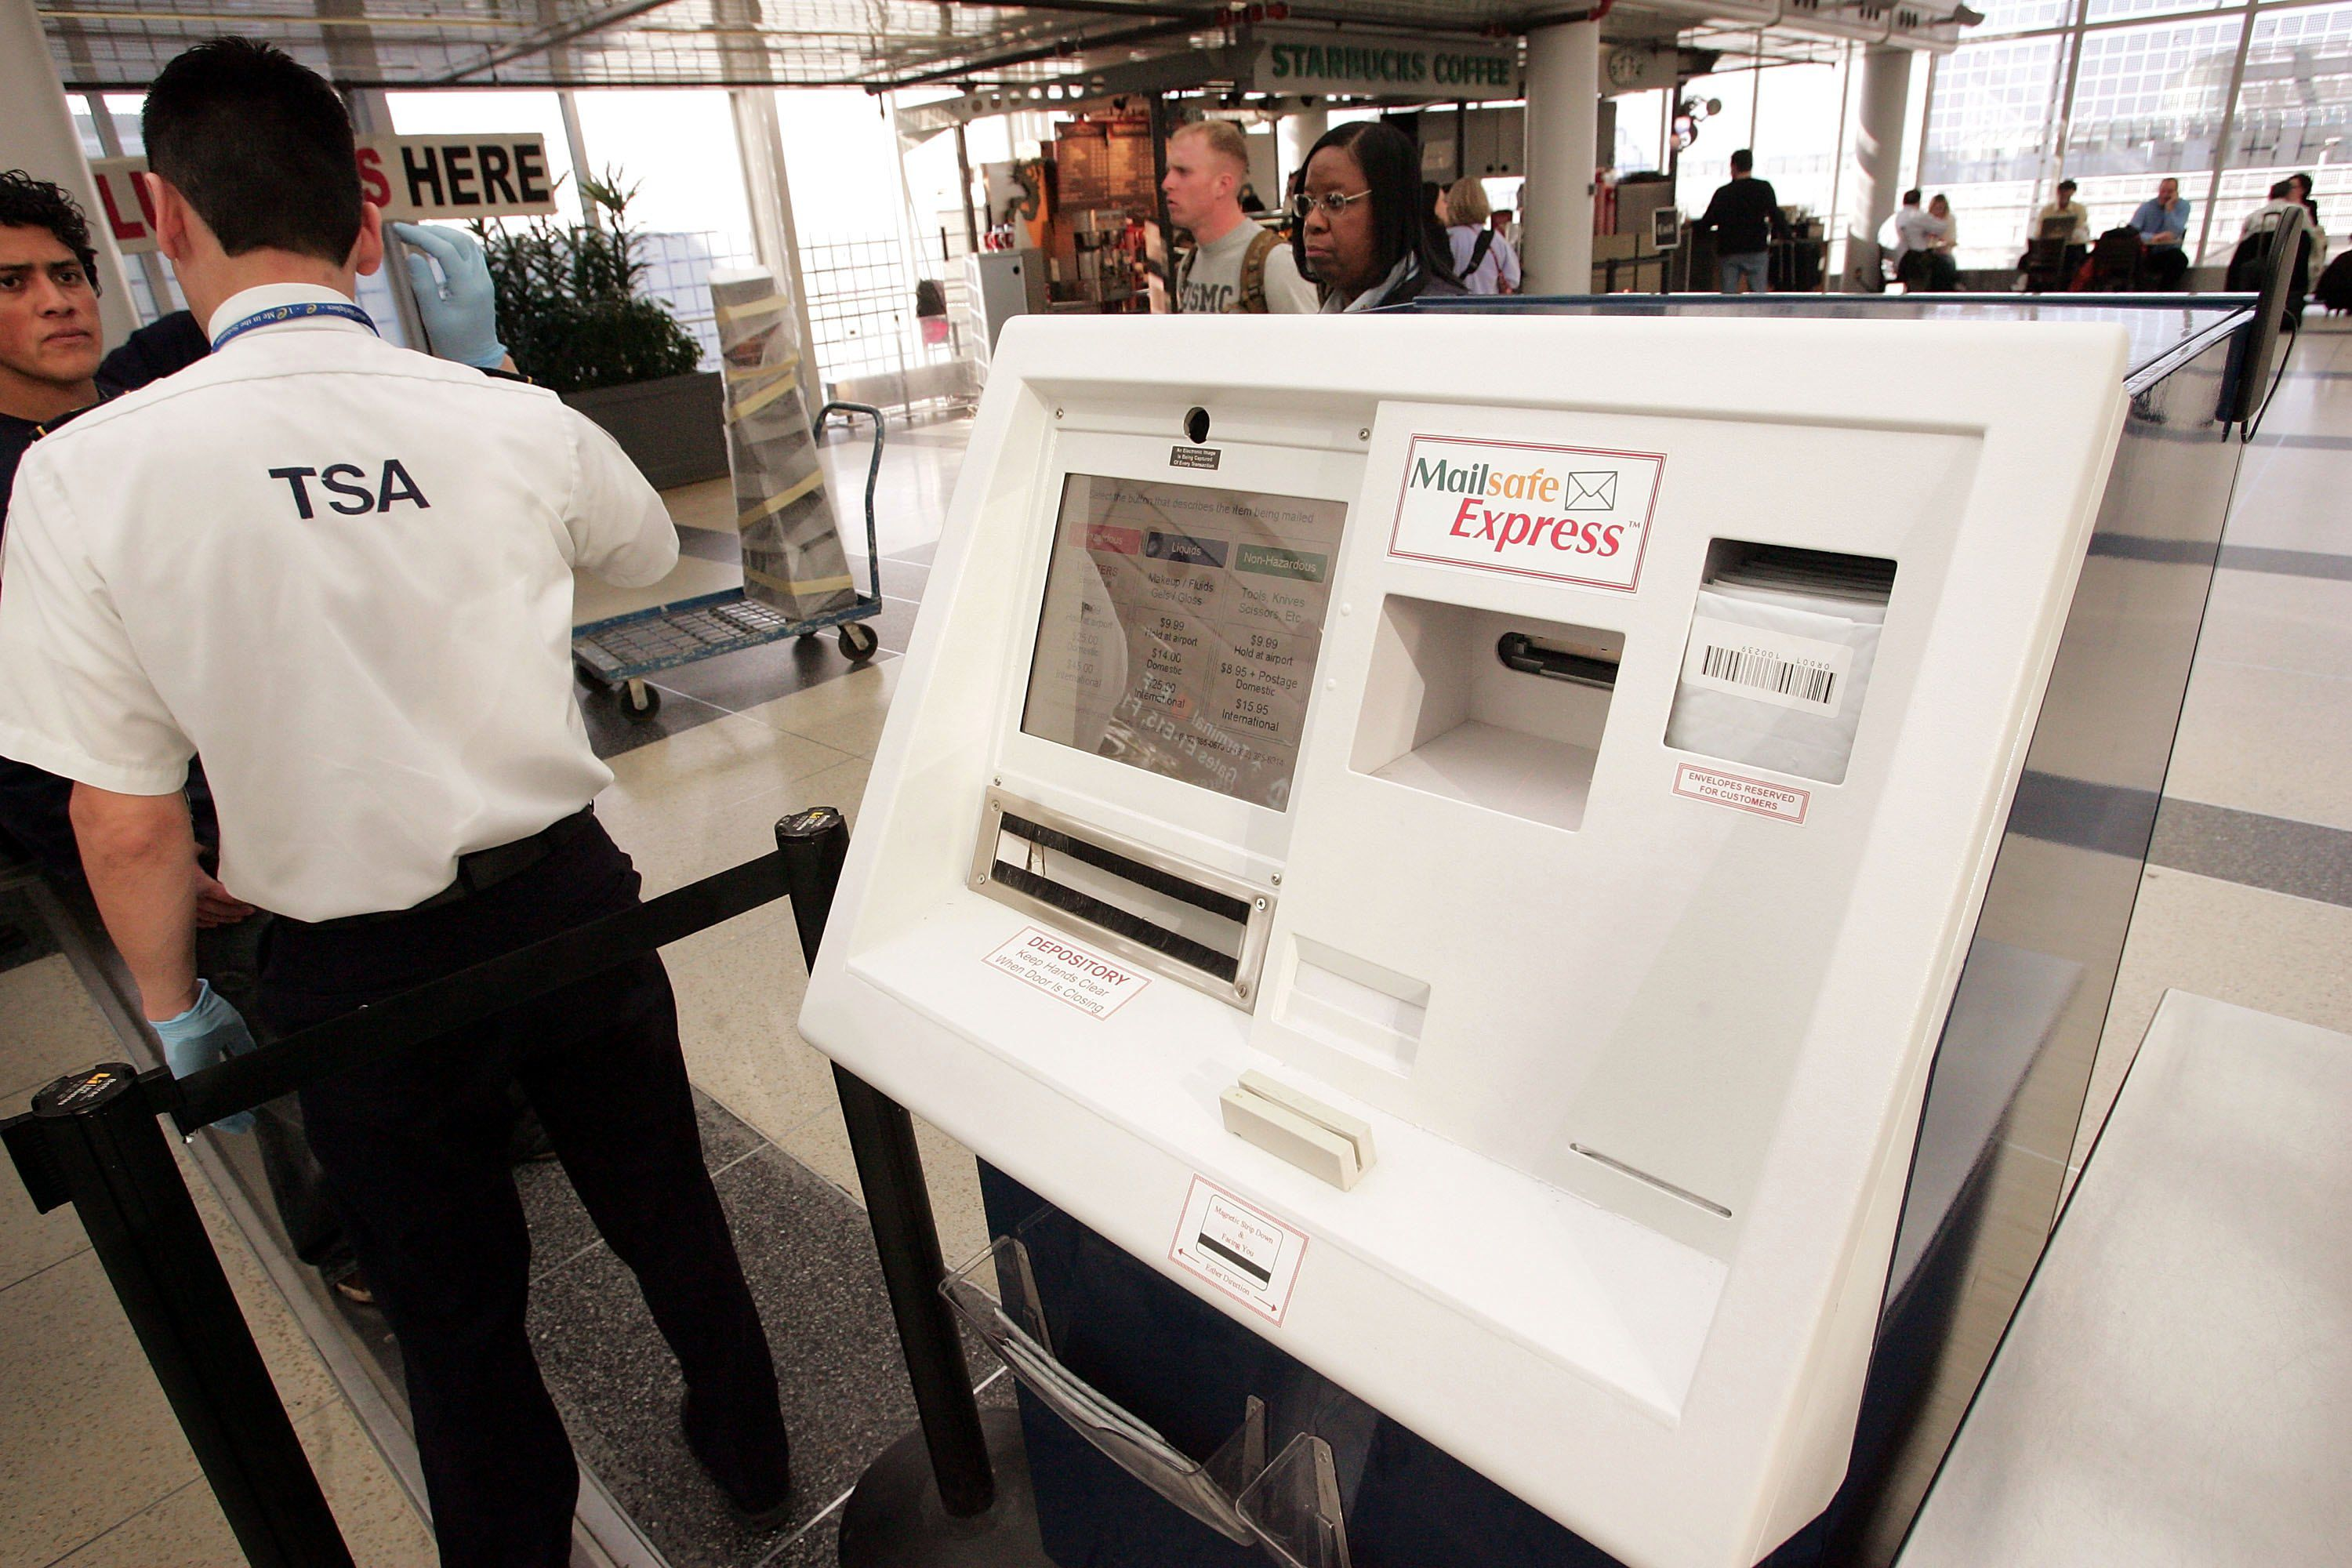 the change in airport security from 9 All these improvements to our airport security is an effect of the 9/11 attacks, causing us to reevaluate united states security system and make important changes in order to protect our safety and to prevent another attack.